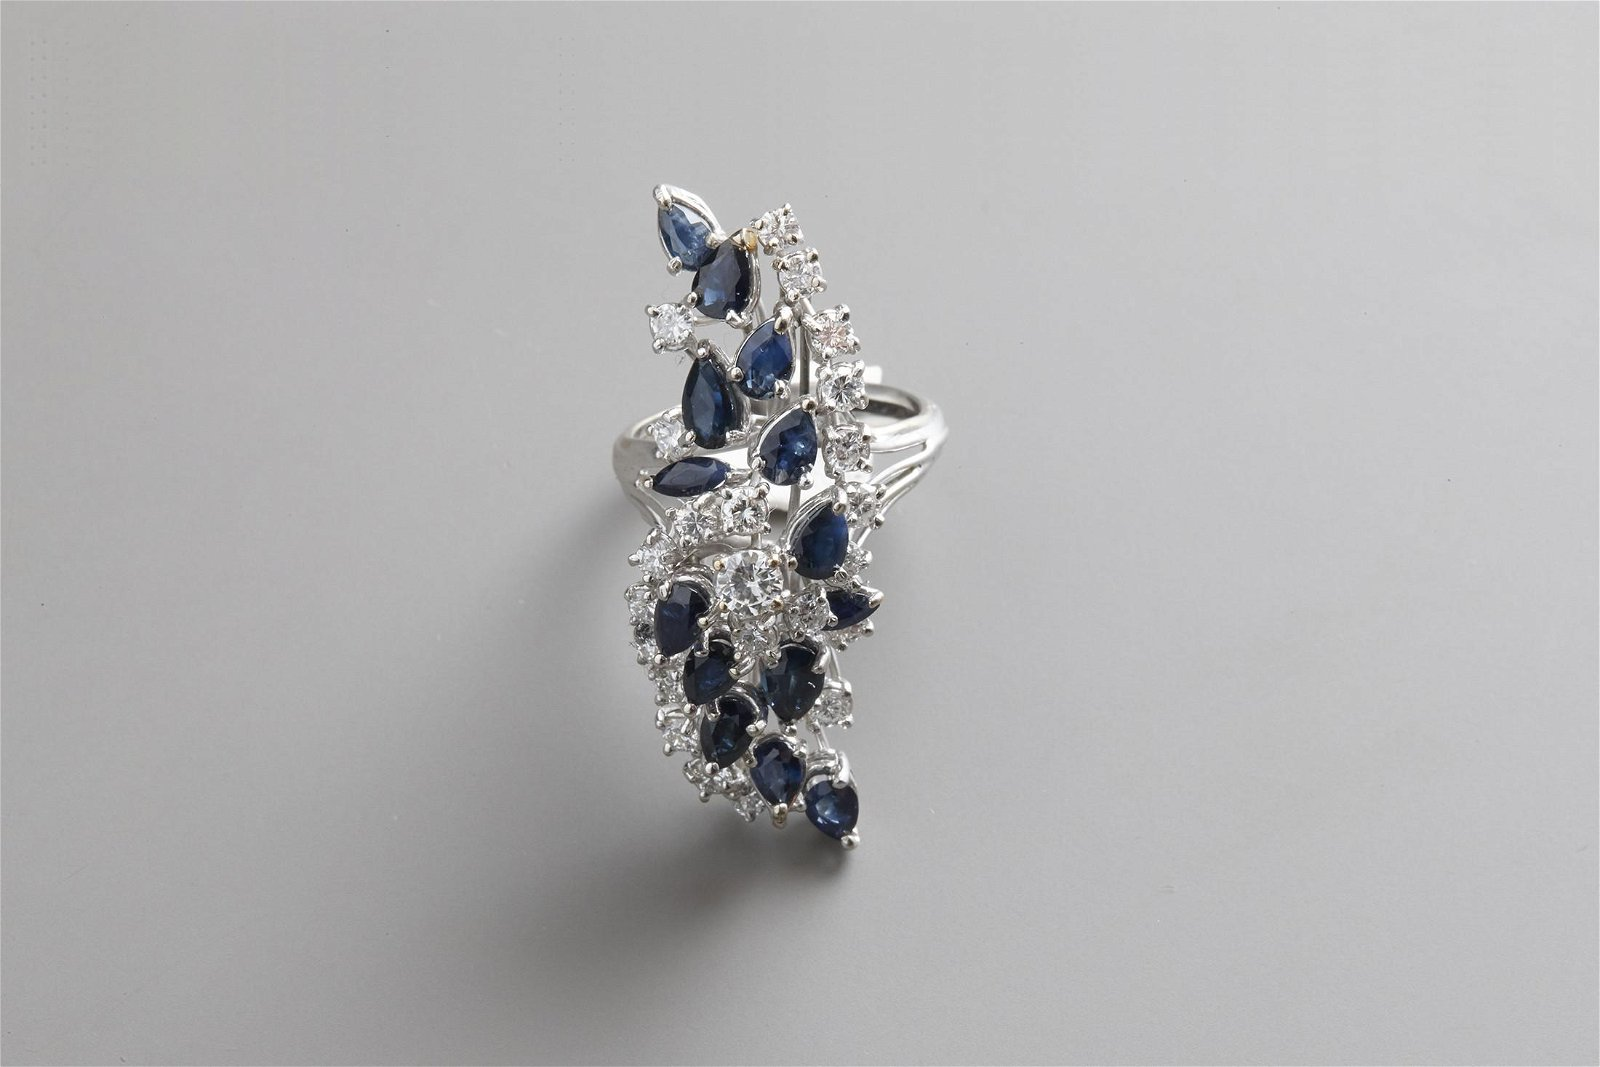 Ring in white gold with diamonds and sapphires